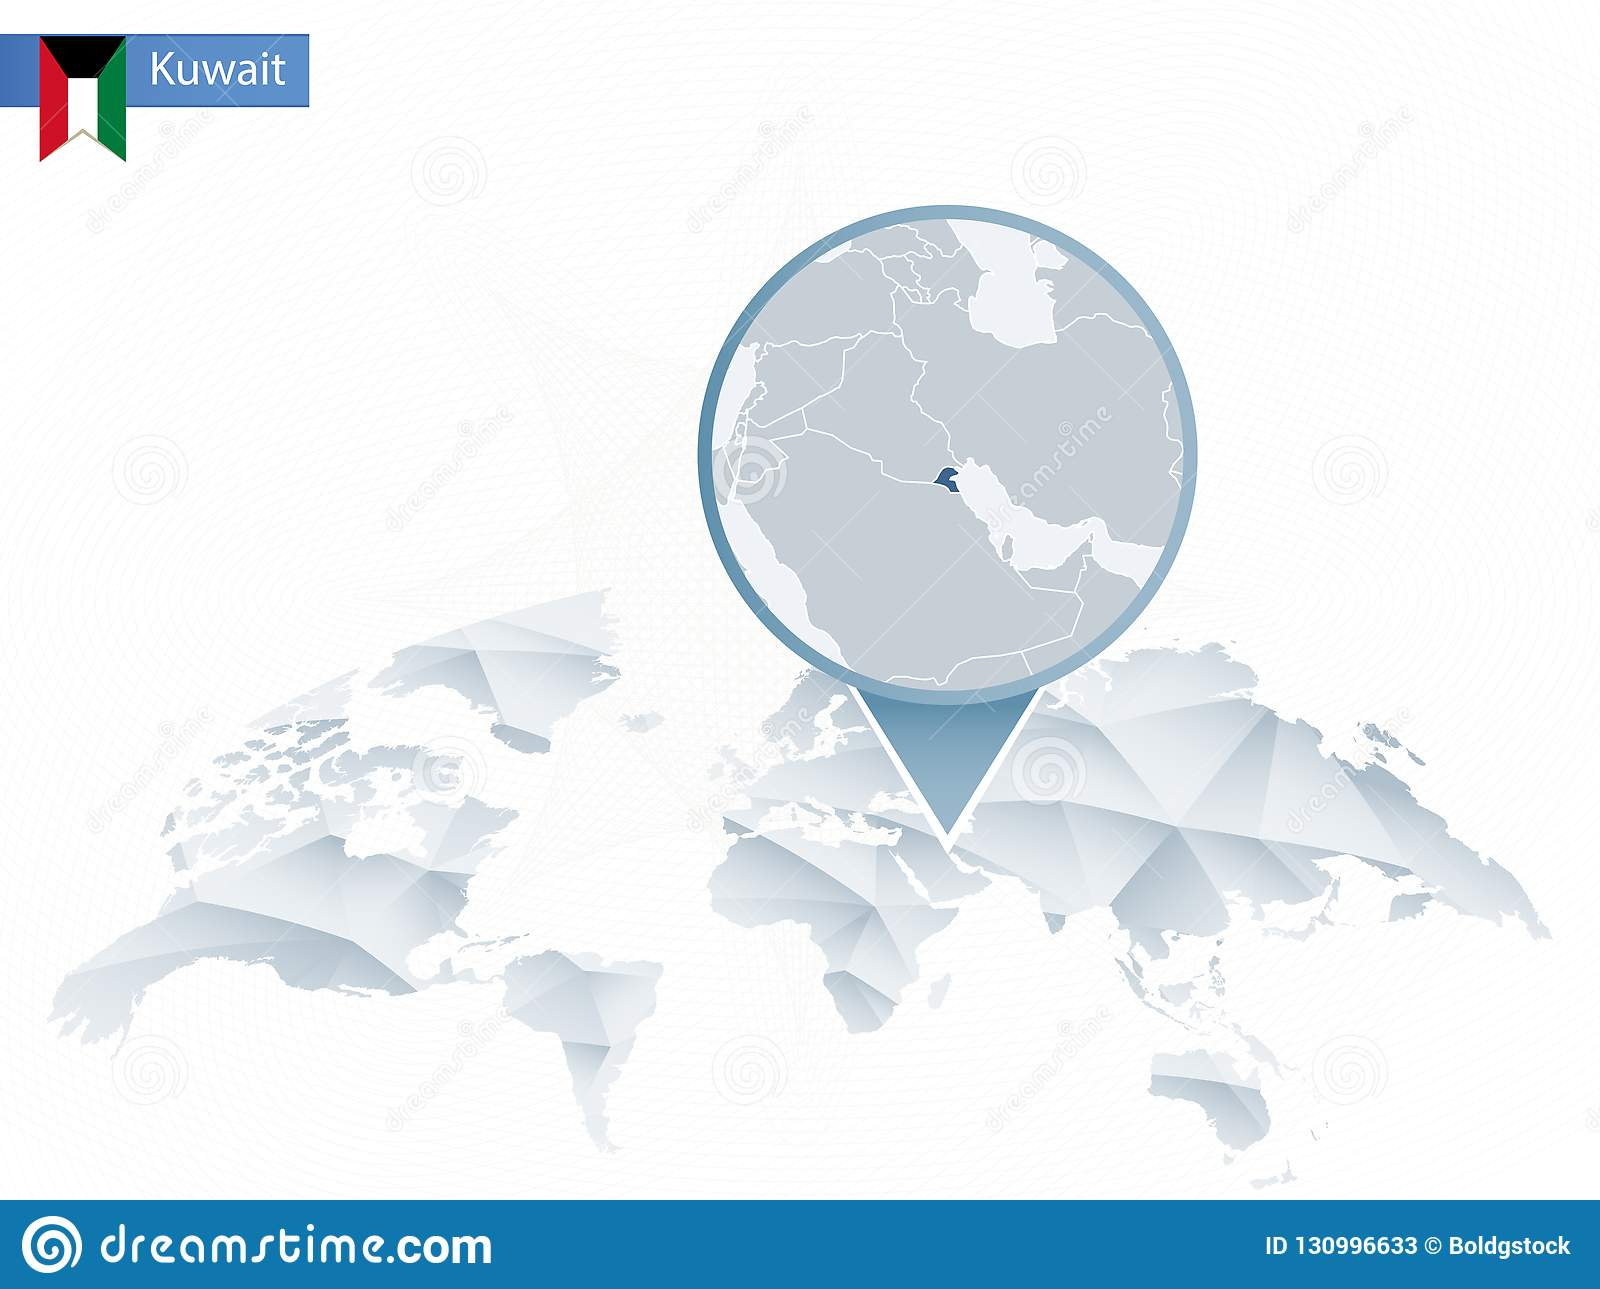 Abstract Rounded World Map With Pinned Detailed Kuwait Map. Stock ...